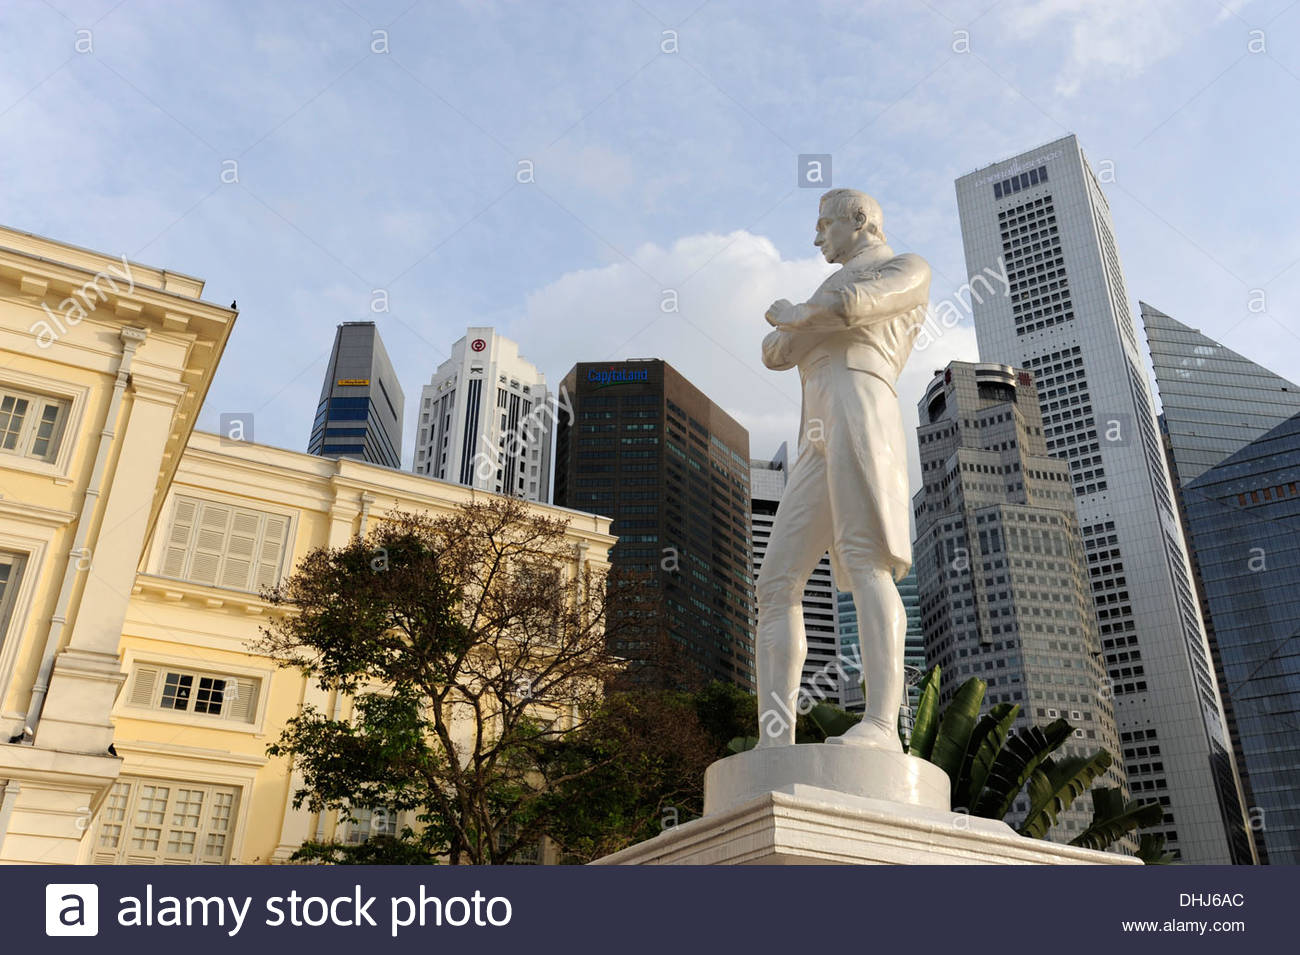 Asian Civilisation Museum and Raffles monument in front of the Central Business District, CBD, Singapore, Asia - Stock Image